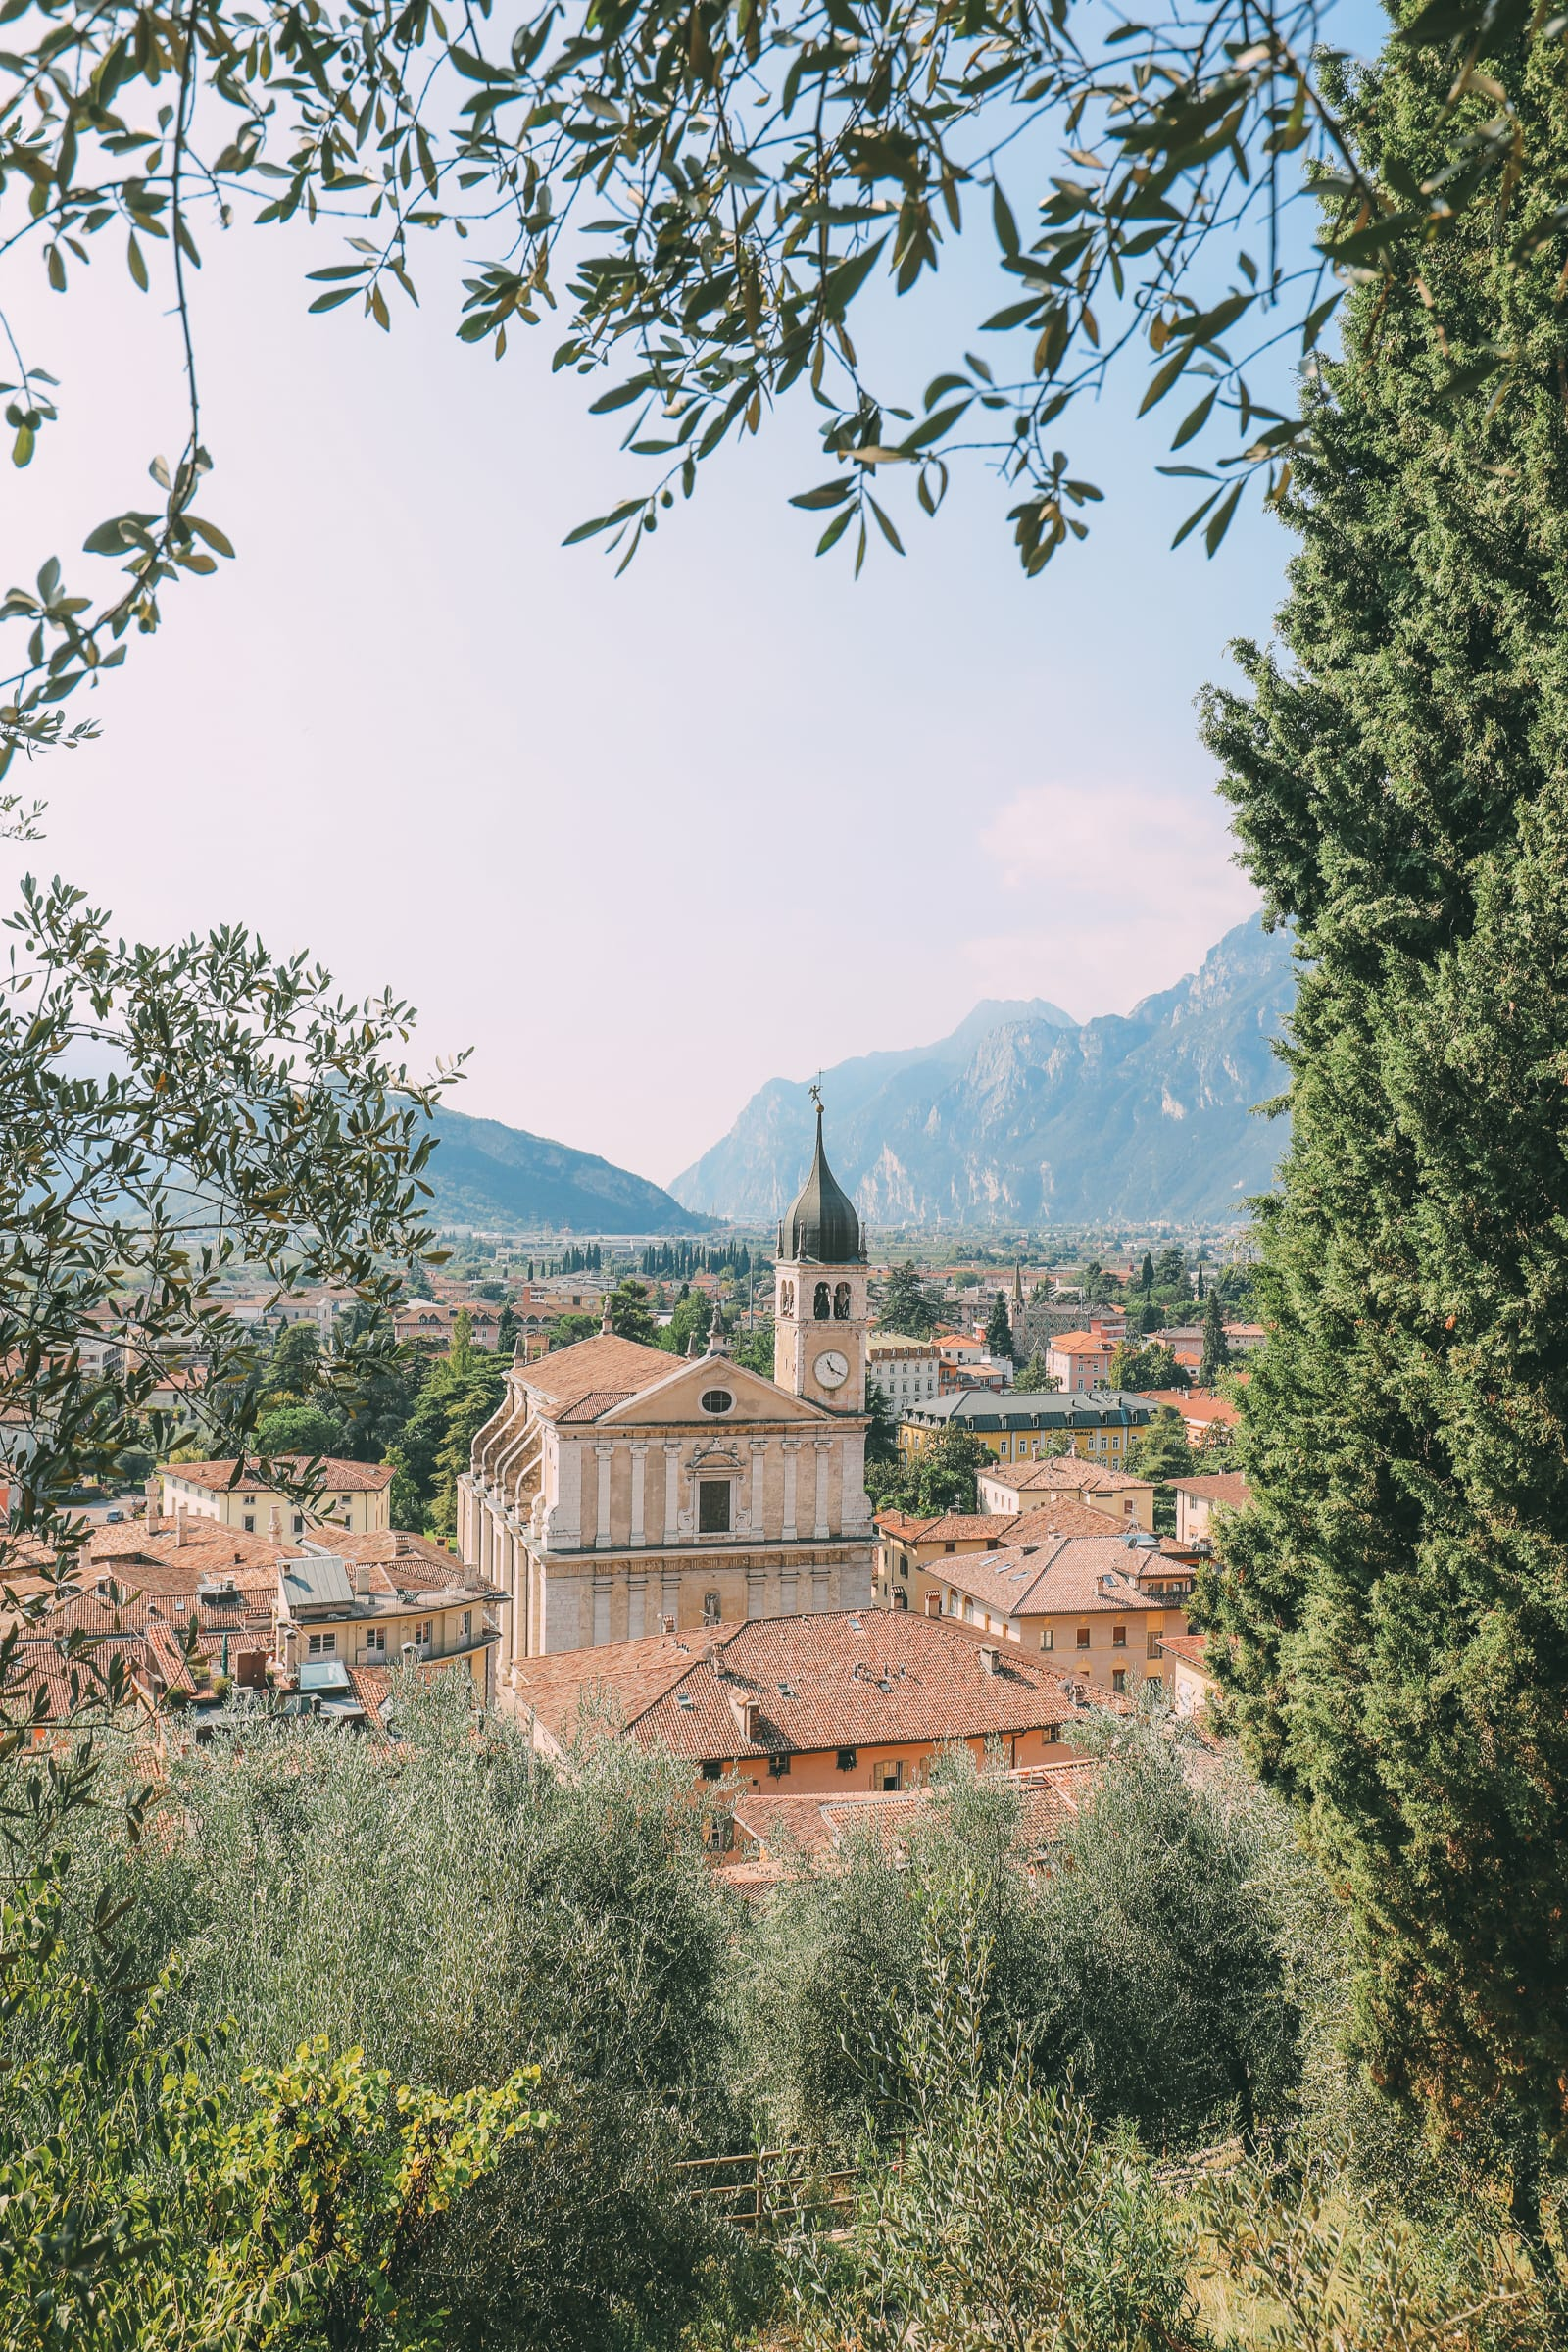 A Trip To One Of The Most Beautiful Parts Of Italy - Garda Trentino (15)